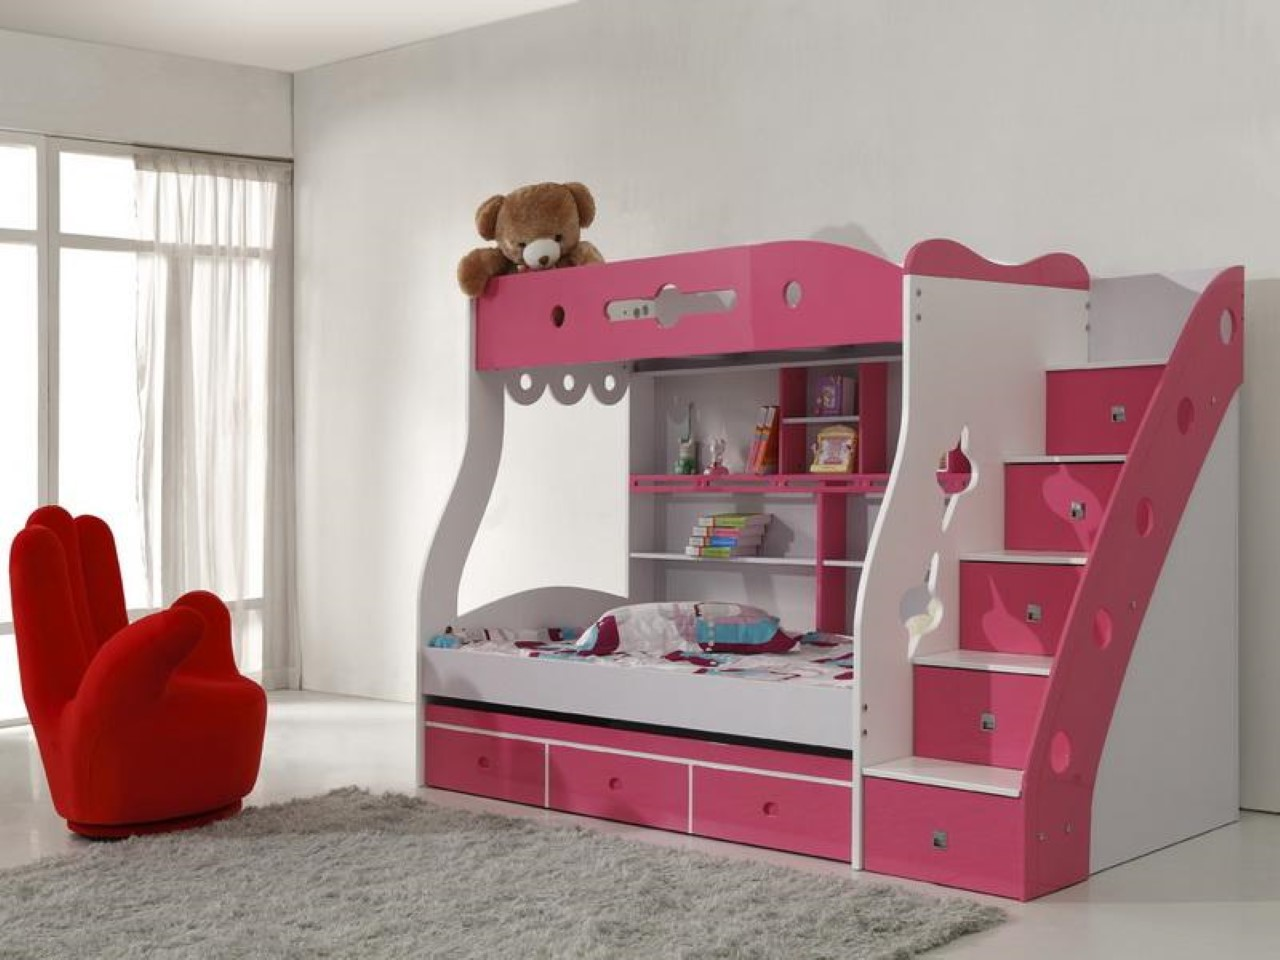 brightly beds with for bedding room swopee together design disney bunk girls multipurpose desk loft teen sh sweet bed playhouse teenage set ga journey bedroom little gallant sets